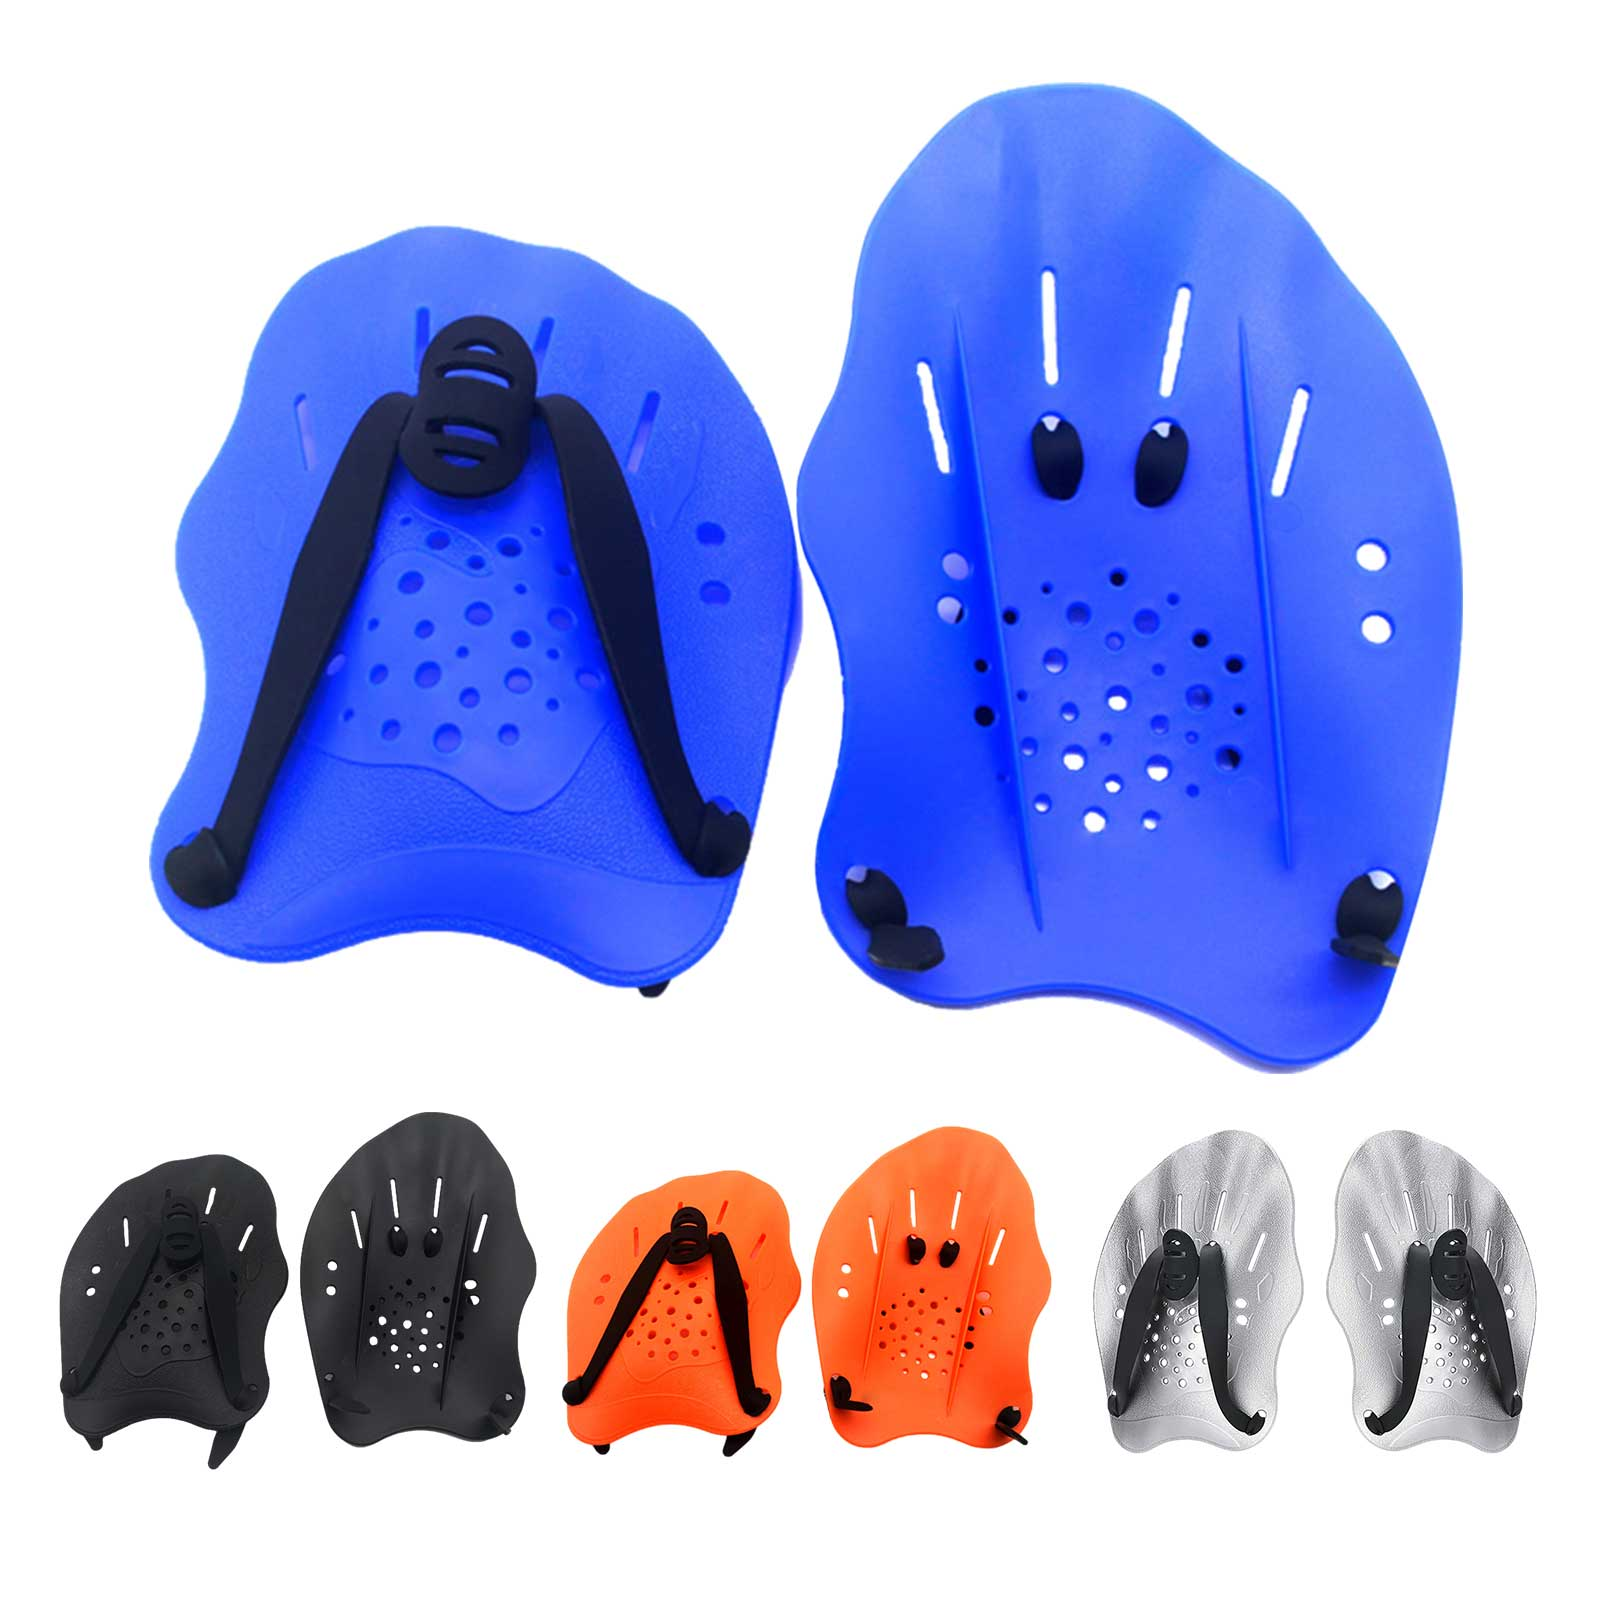 Swimming Paddles Training Adjustable Hand Swim Webbed Gloves Pad Fins Flippers For Men Women Kids Diving Palm adults unisex omouboi swimming security pfds black swim paddles hand gloves fins with over head inflatable snorkel rescue vest